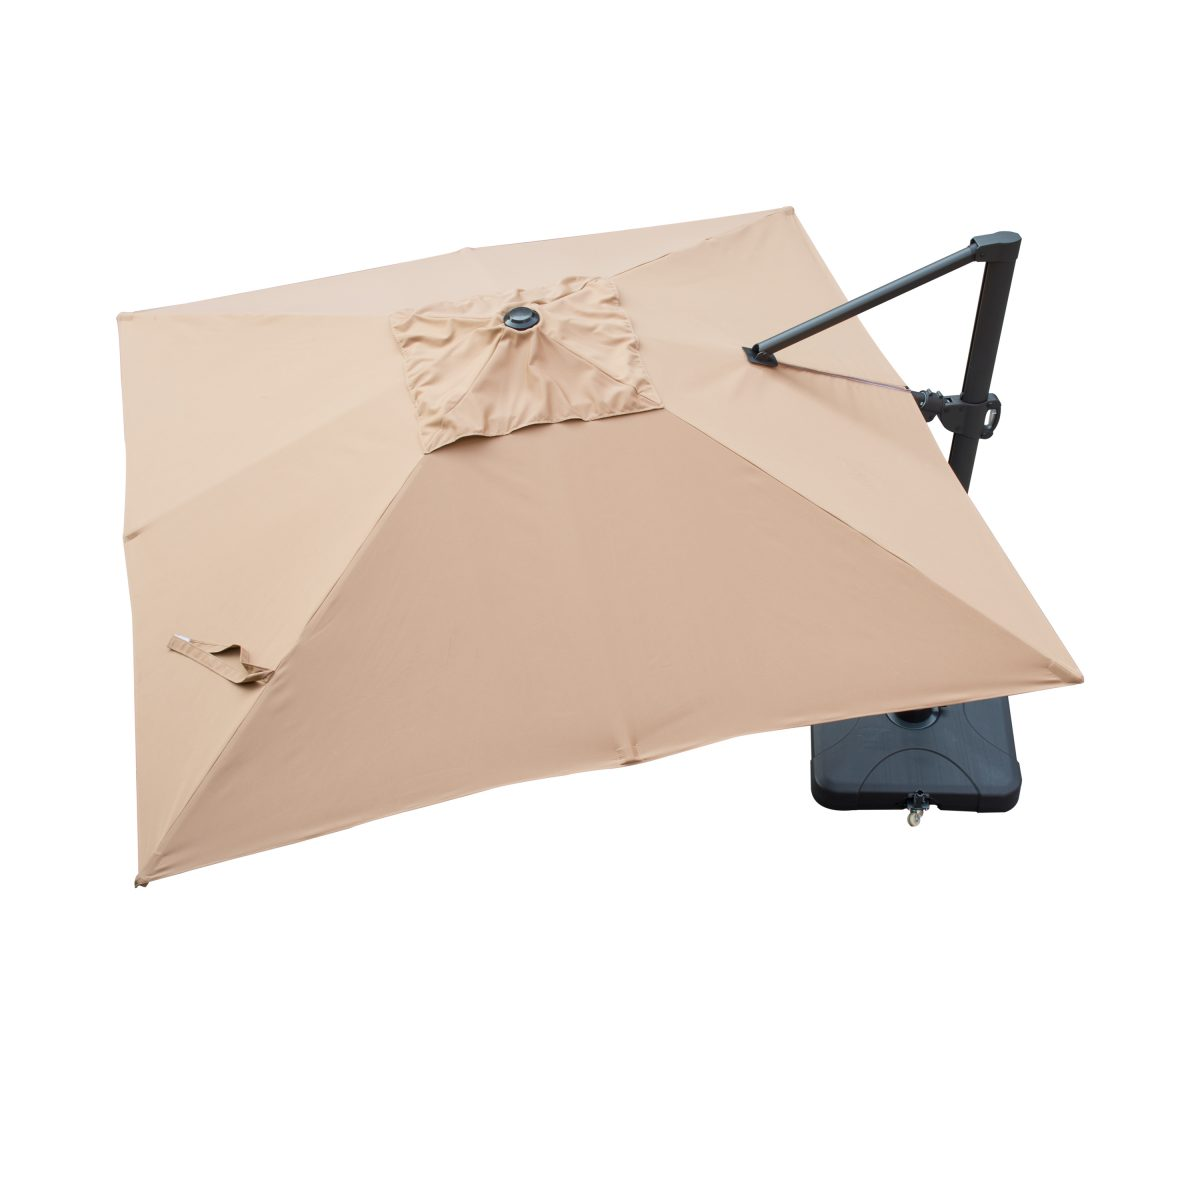 Sirio Niko Beige Square Resort Umbrella Starsong